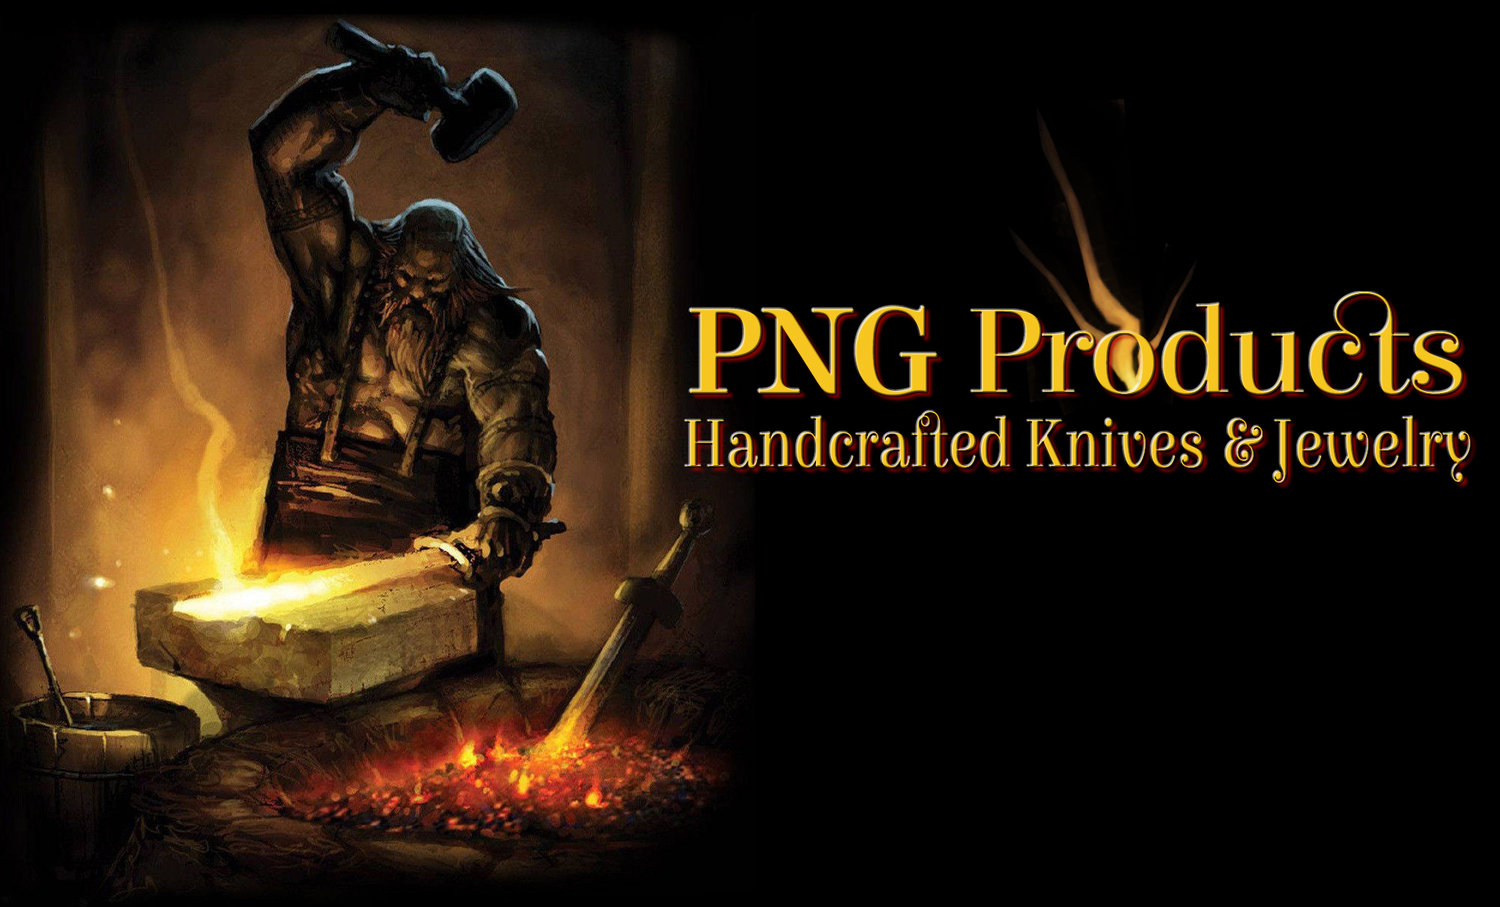 PNG Products